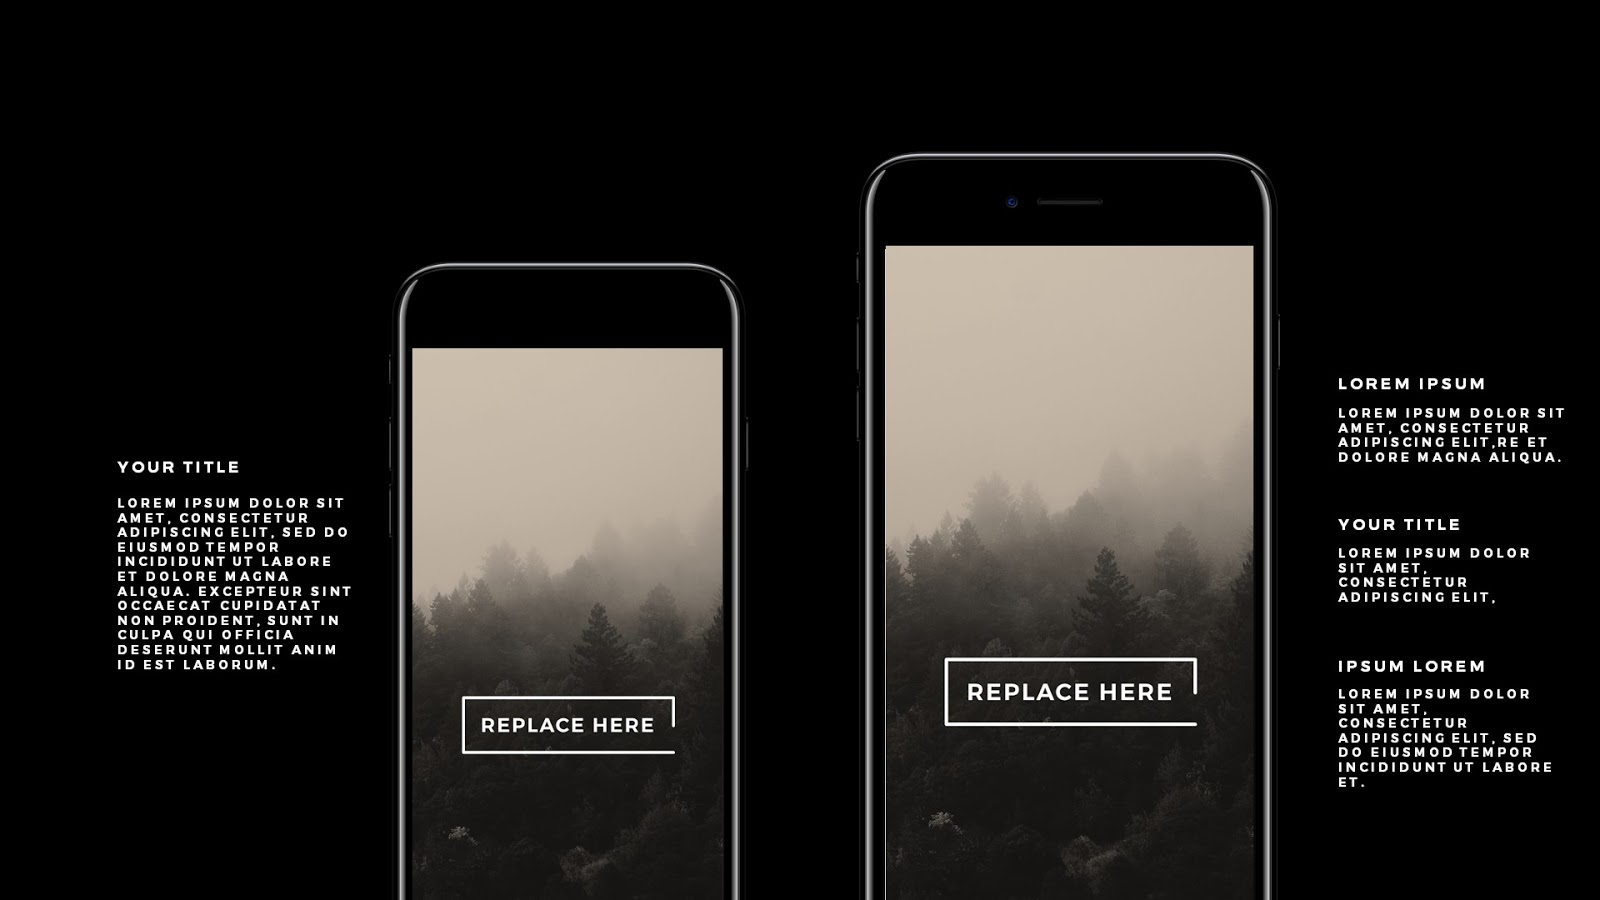 Powerpoint iphone template choice image templates example free apple devices mockups free powerpoint template infographicon iphone 7 jet black mockup free powerpoint template slide toneelgroepblik Images